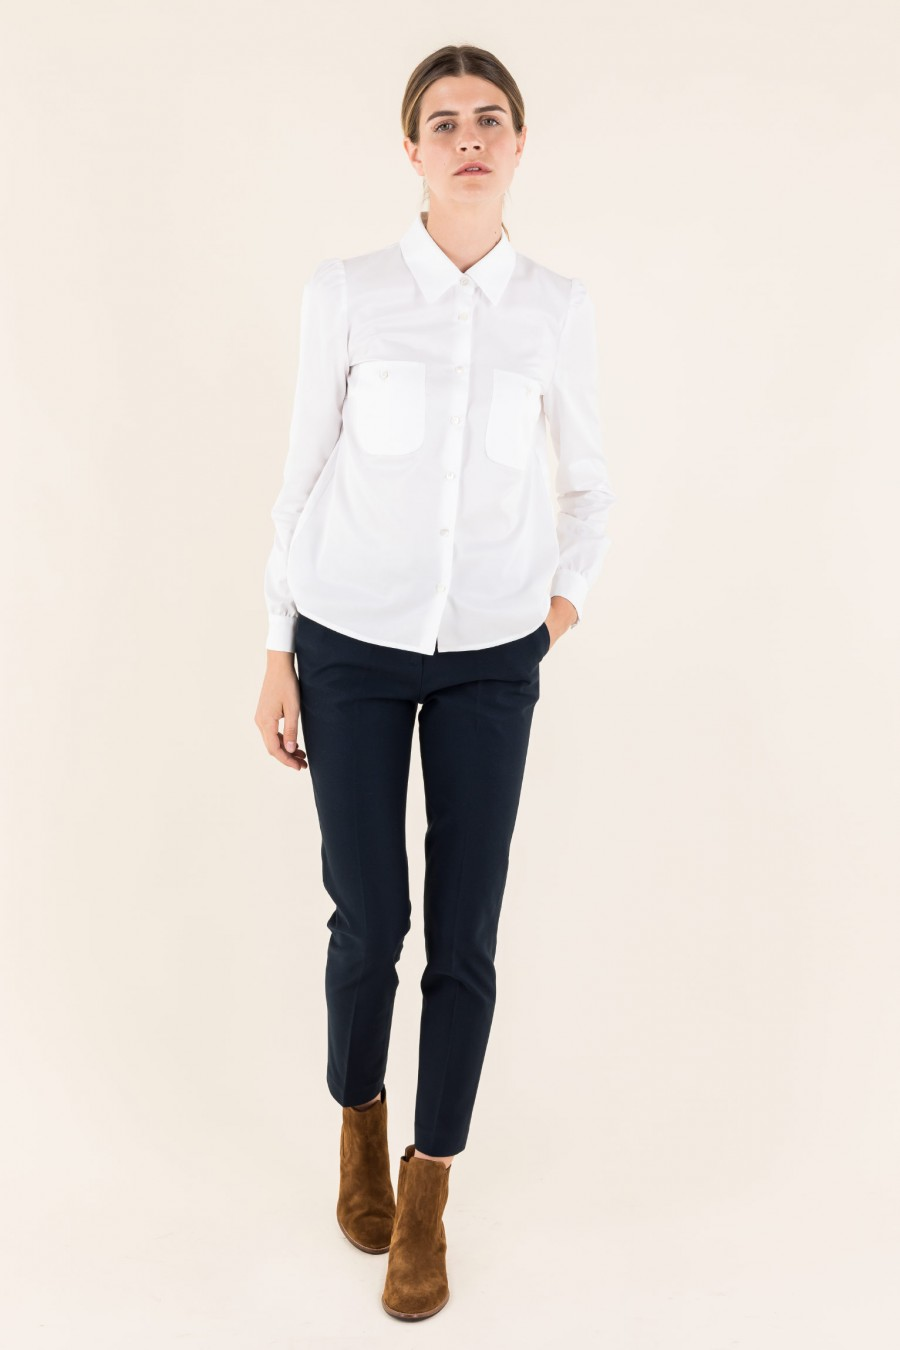 Shirt with little pockets